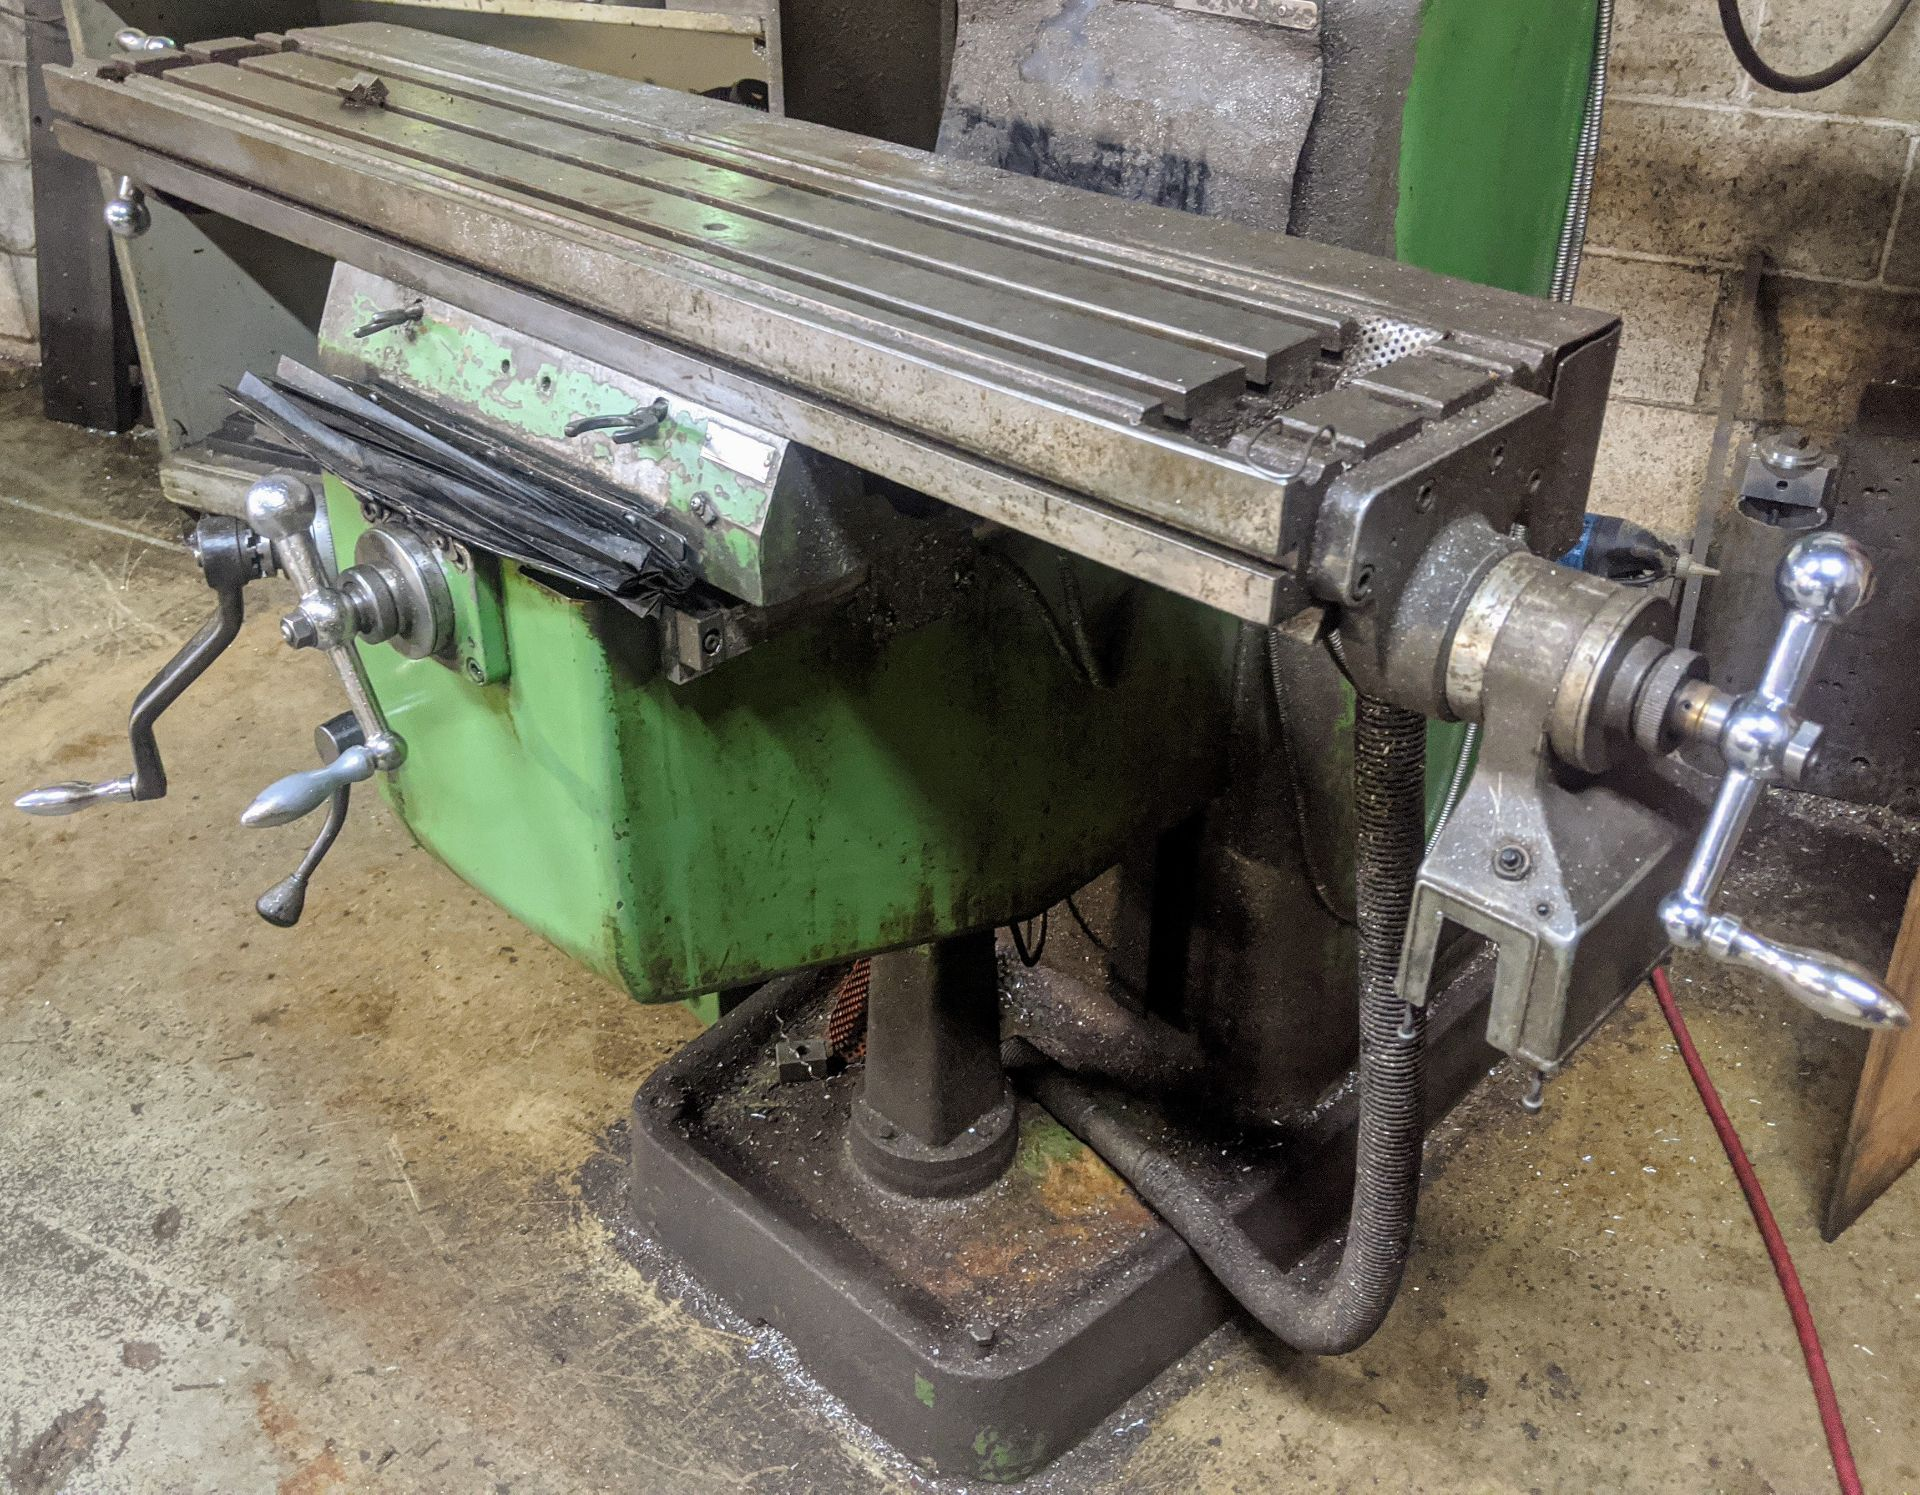 "Lot 33 - POWERMILL KONDIA FV-1 Vertical Mill, Mitutoyo 2-Axis DRO, 40 Taper, 9"" x 48"" Table, 60 – 4,000"